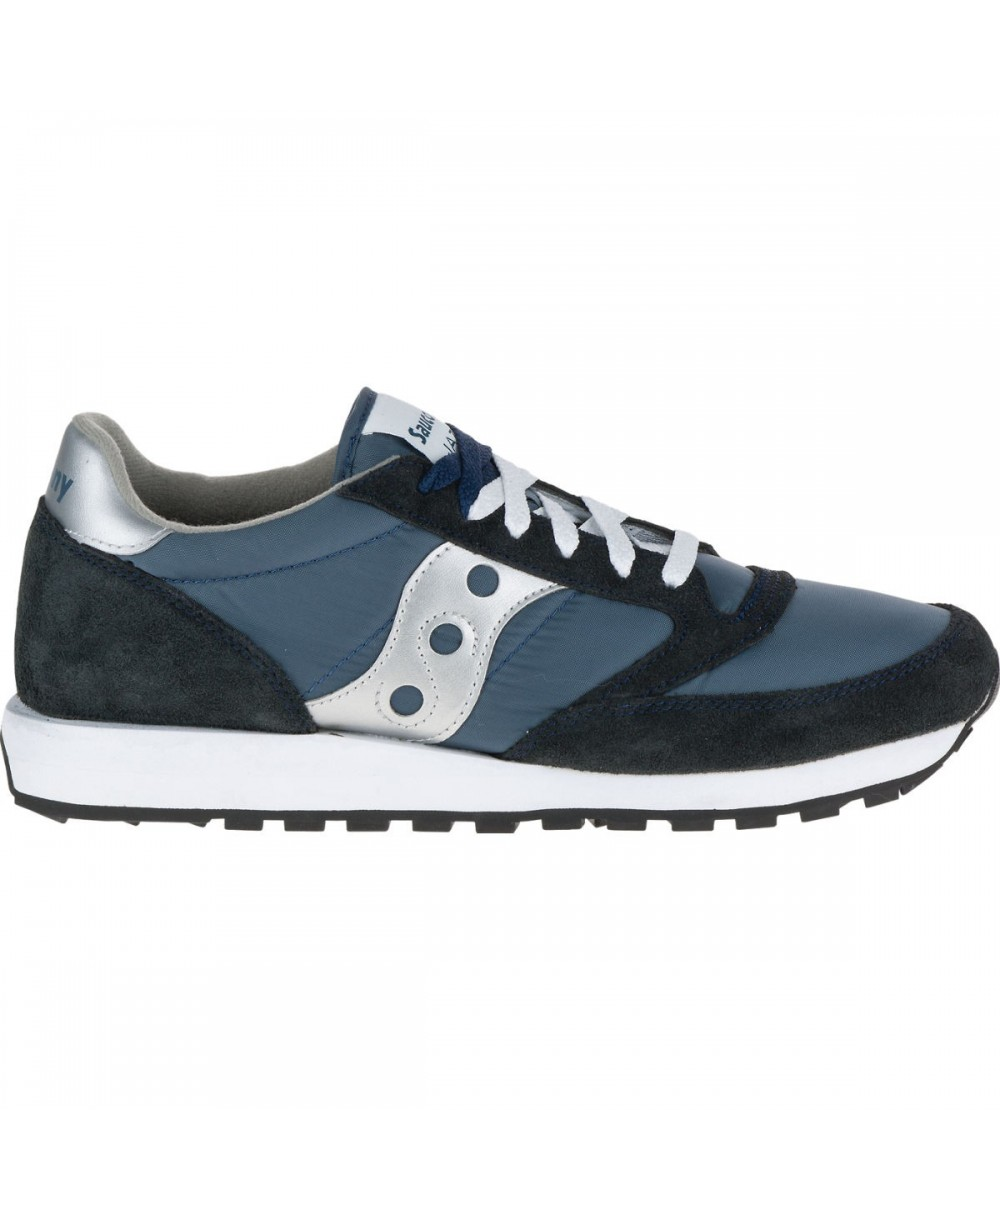 a26480ec1a3a Saucony Men s Jazz Original Sneakers Shoes Navy Silver